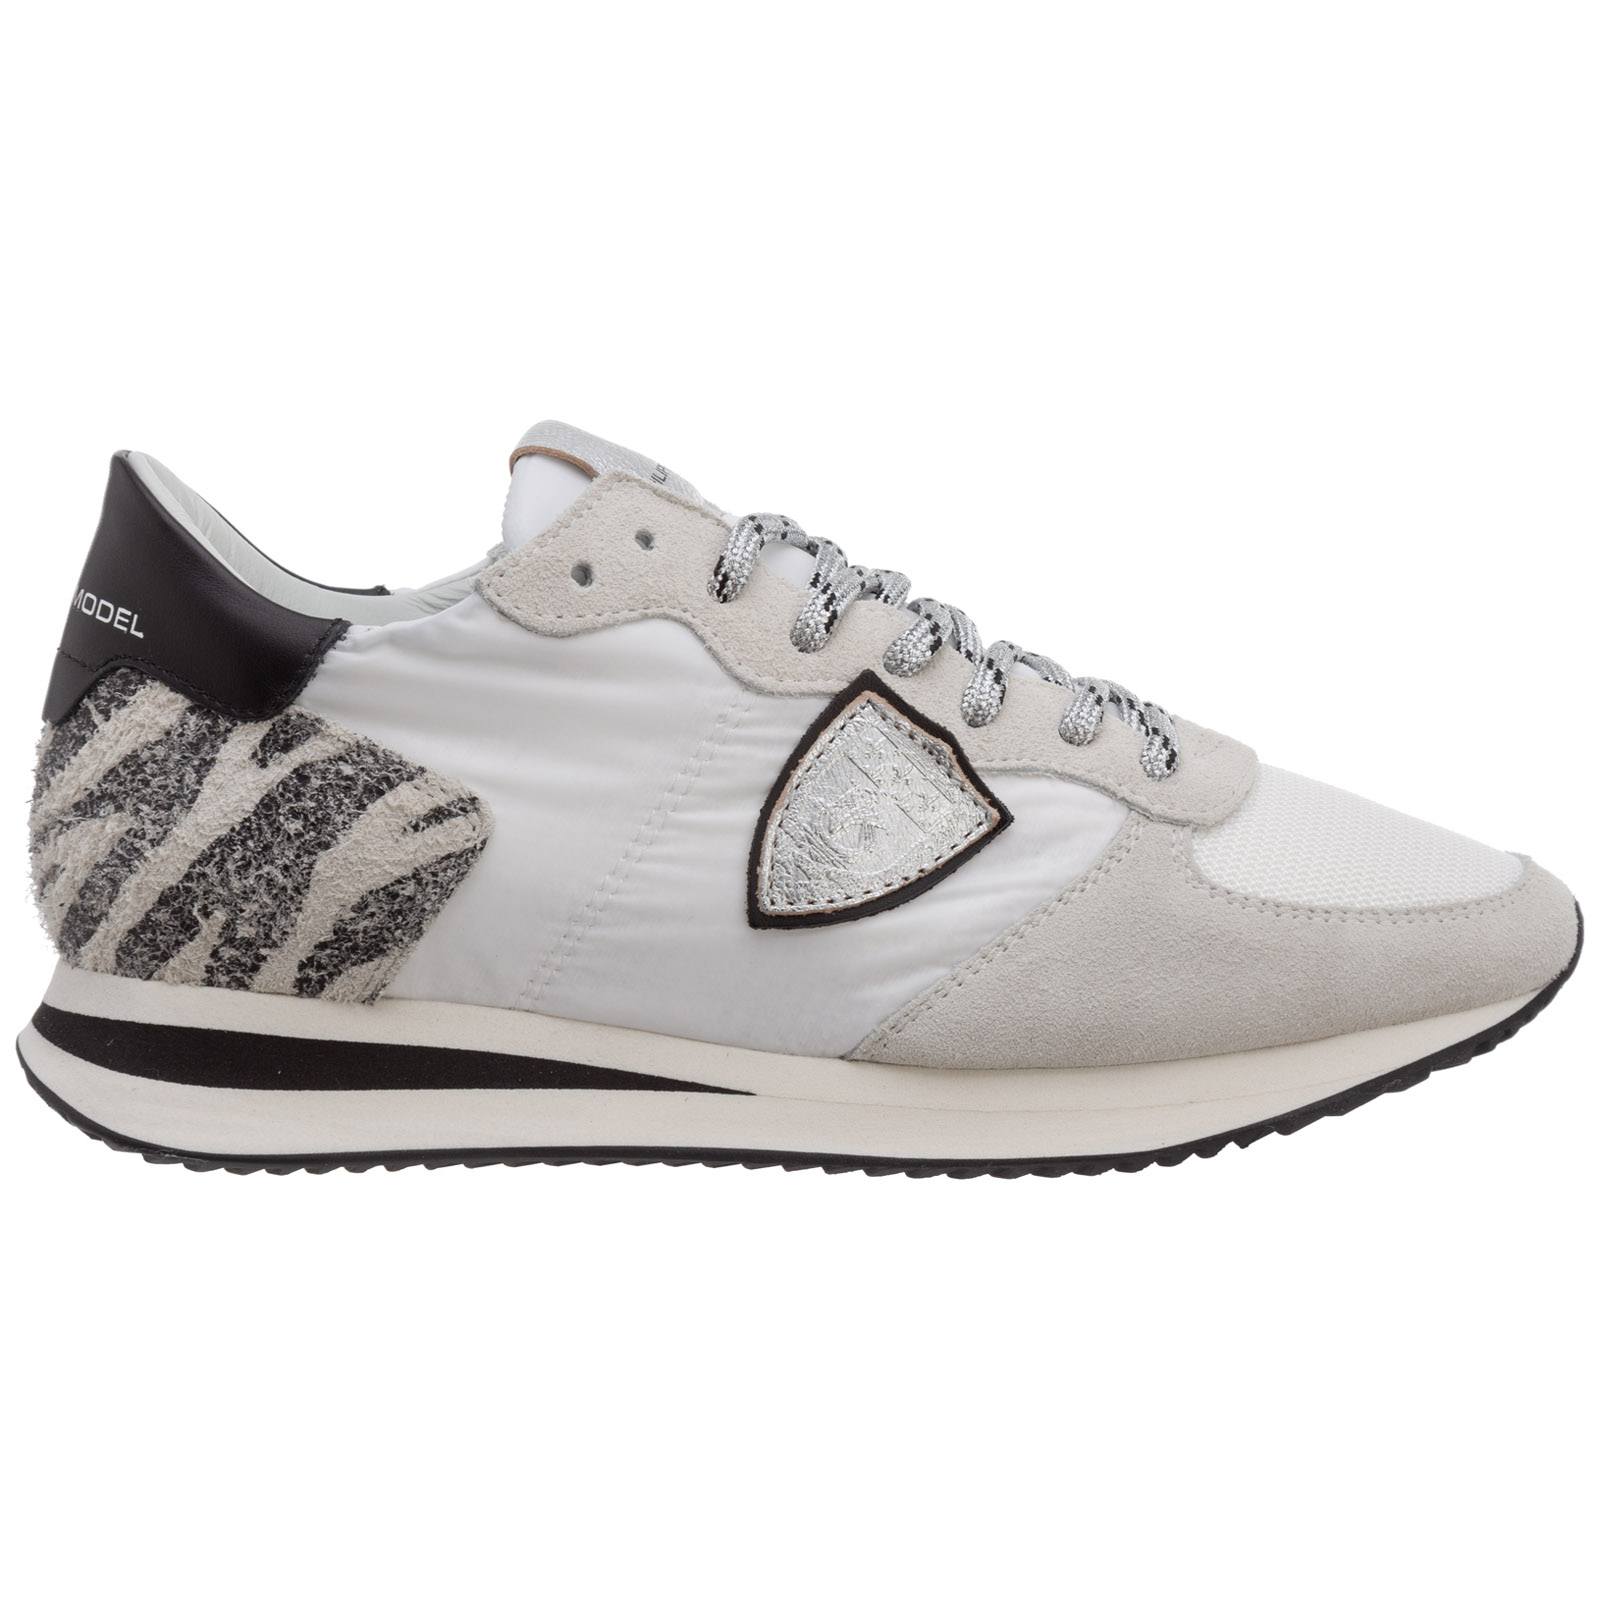 Philippe Model WOMEN'S SHOES SUEDE TRAINERS SNEAKERS TRPX